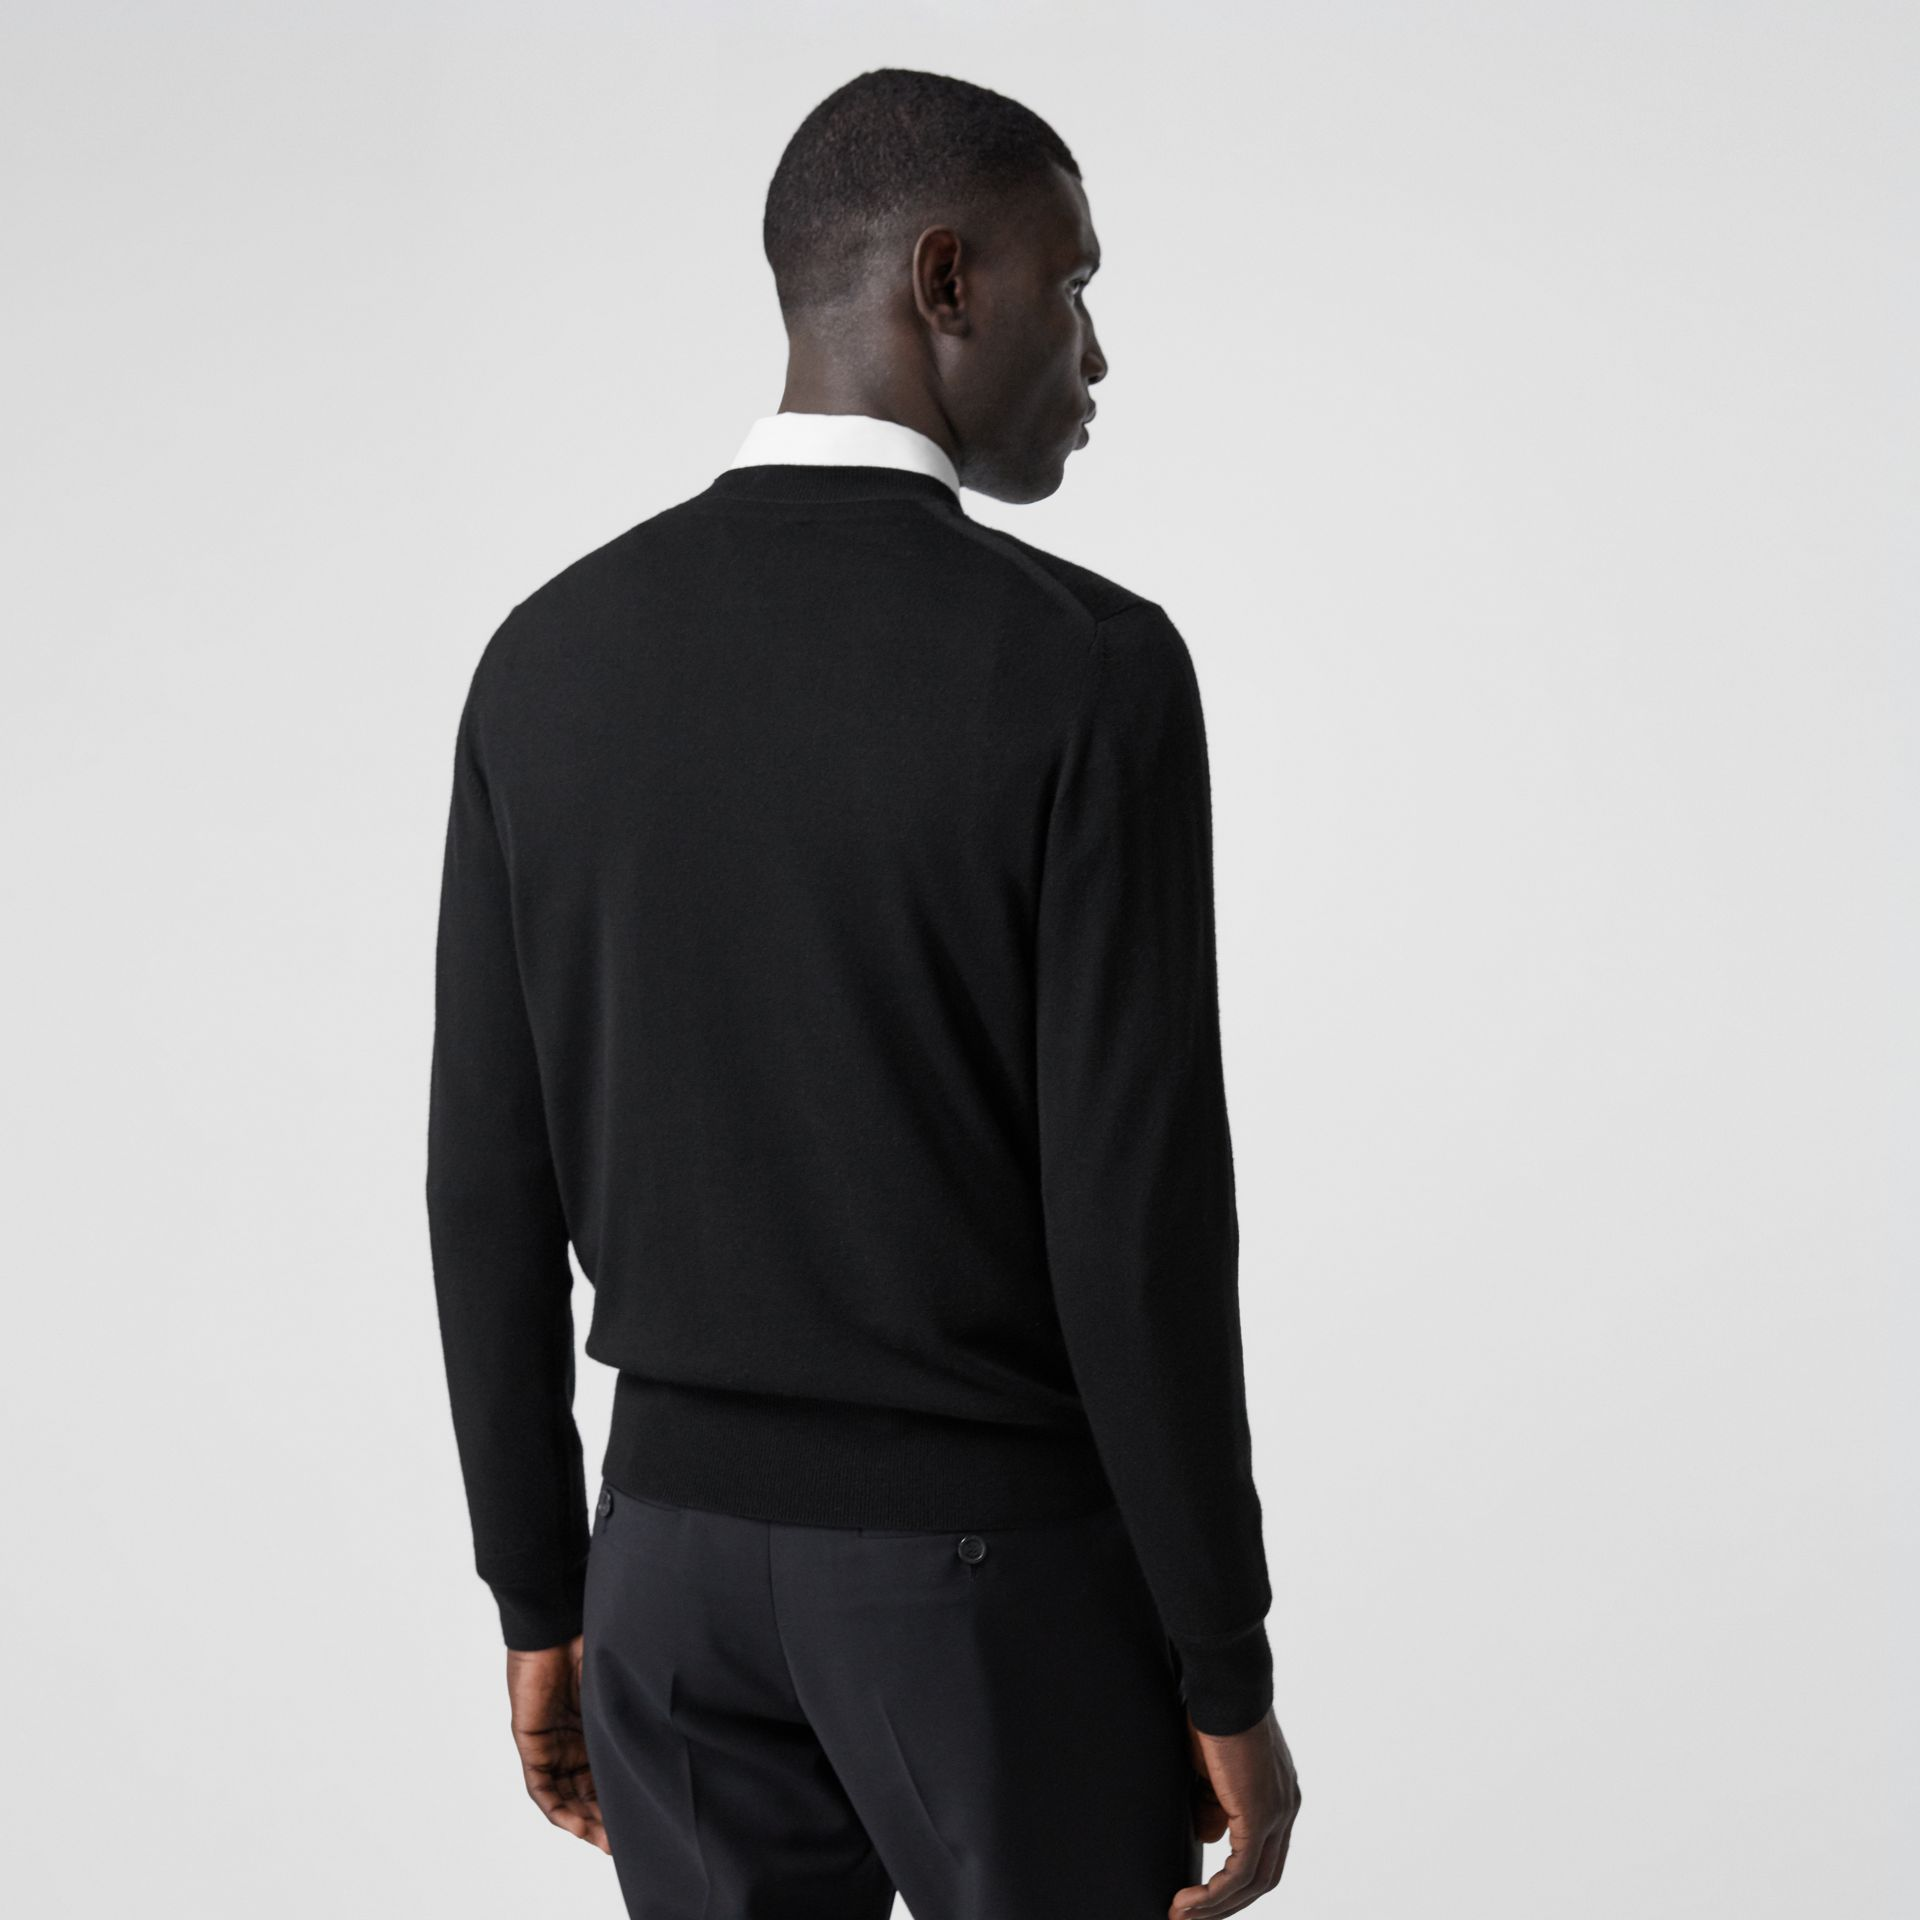 Monogram Motif Merino Wool Sweater in Black - Men | Burberry Australia - gallery image 2